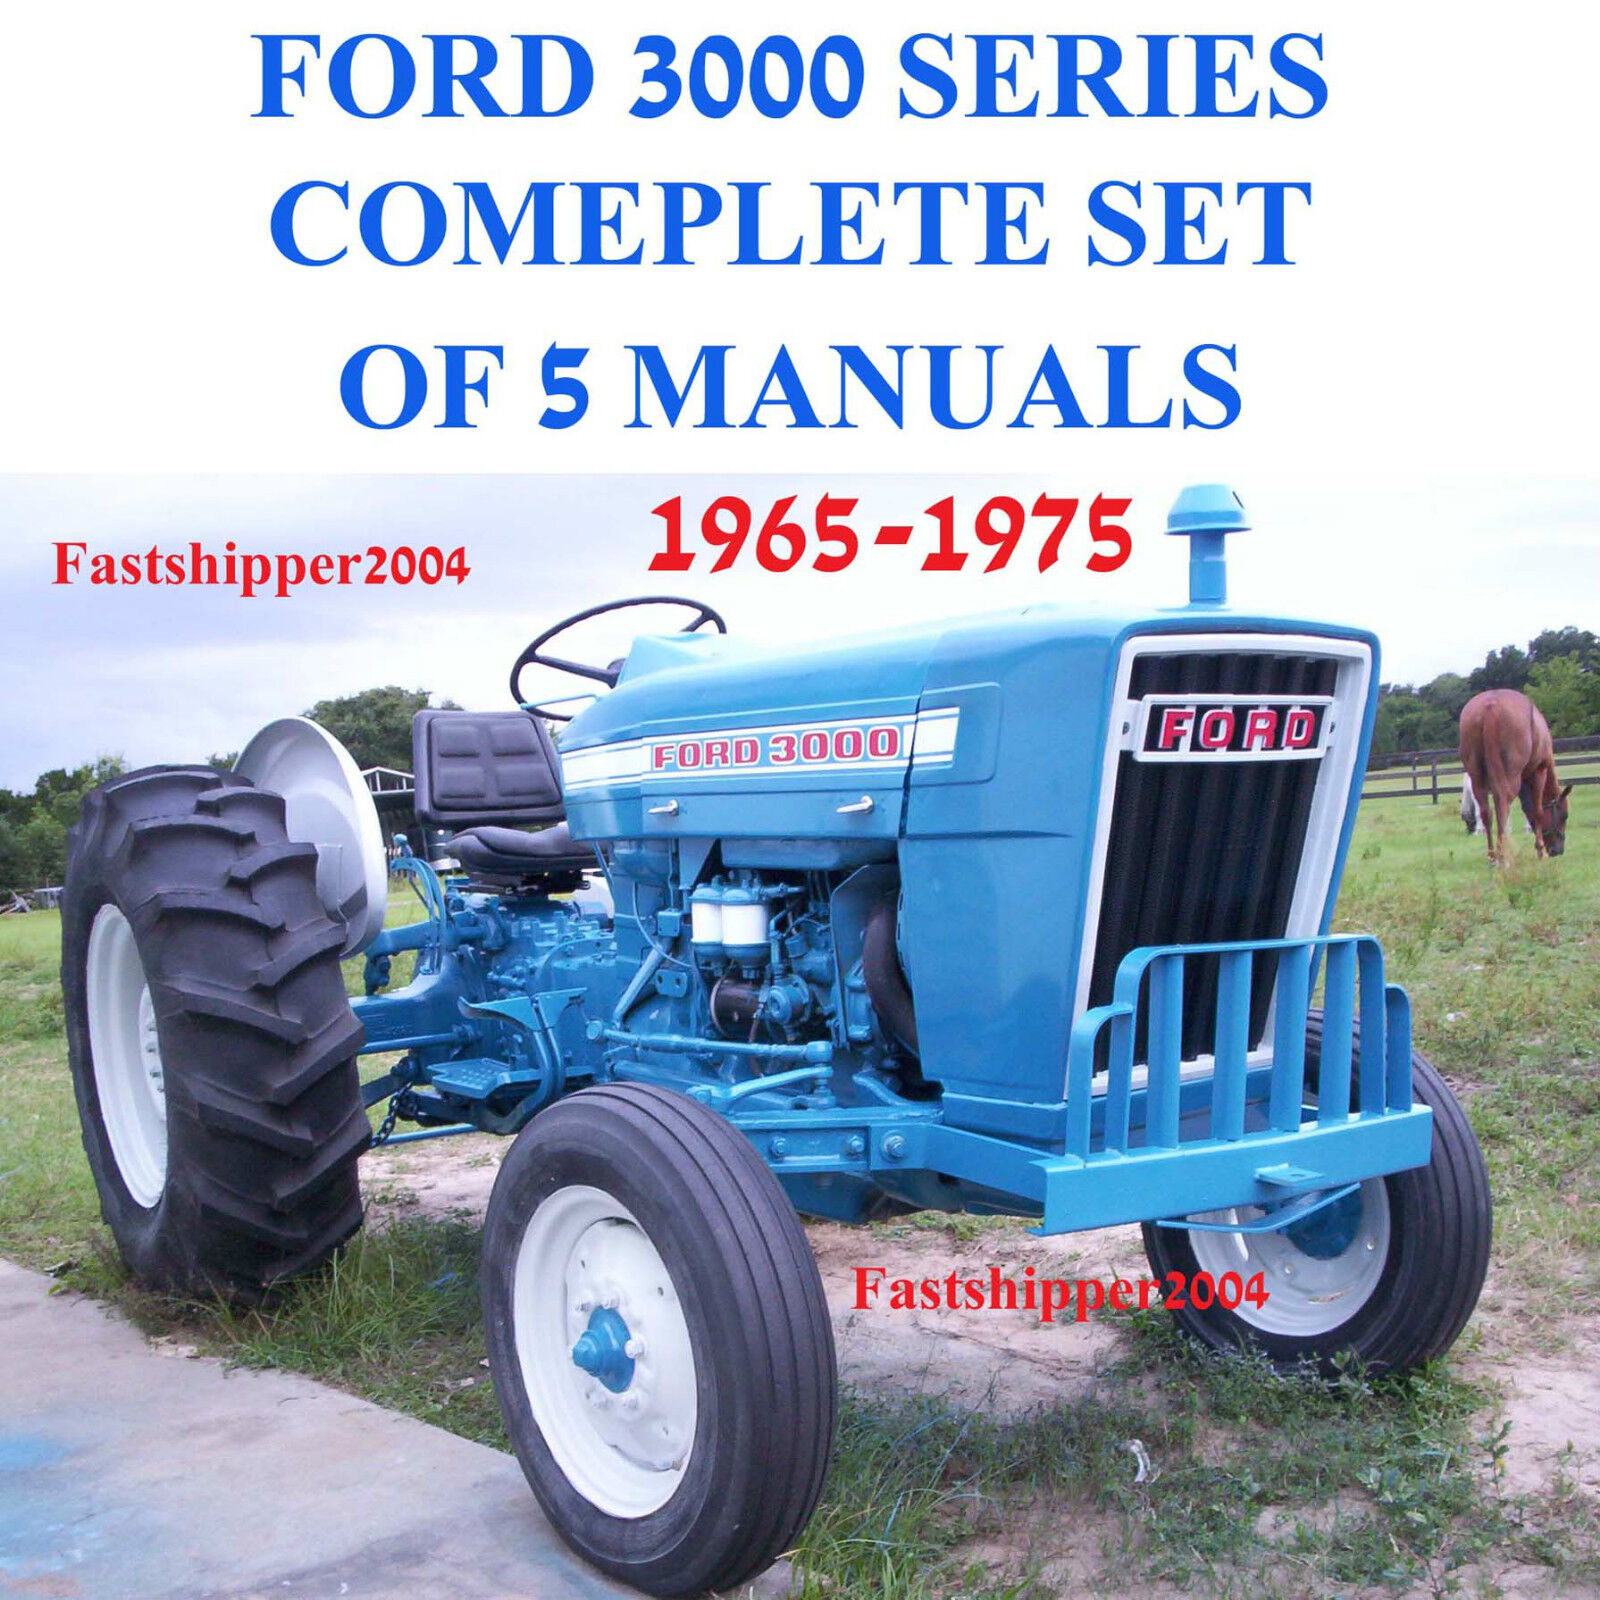 Ford 3000 Tractor Schematics Electrical Wiring Diagrams Instrument Cluster Diagram Parts Breakdown Trusted Schematic 1965